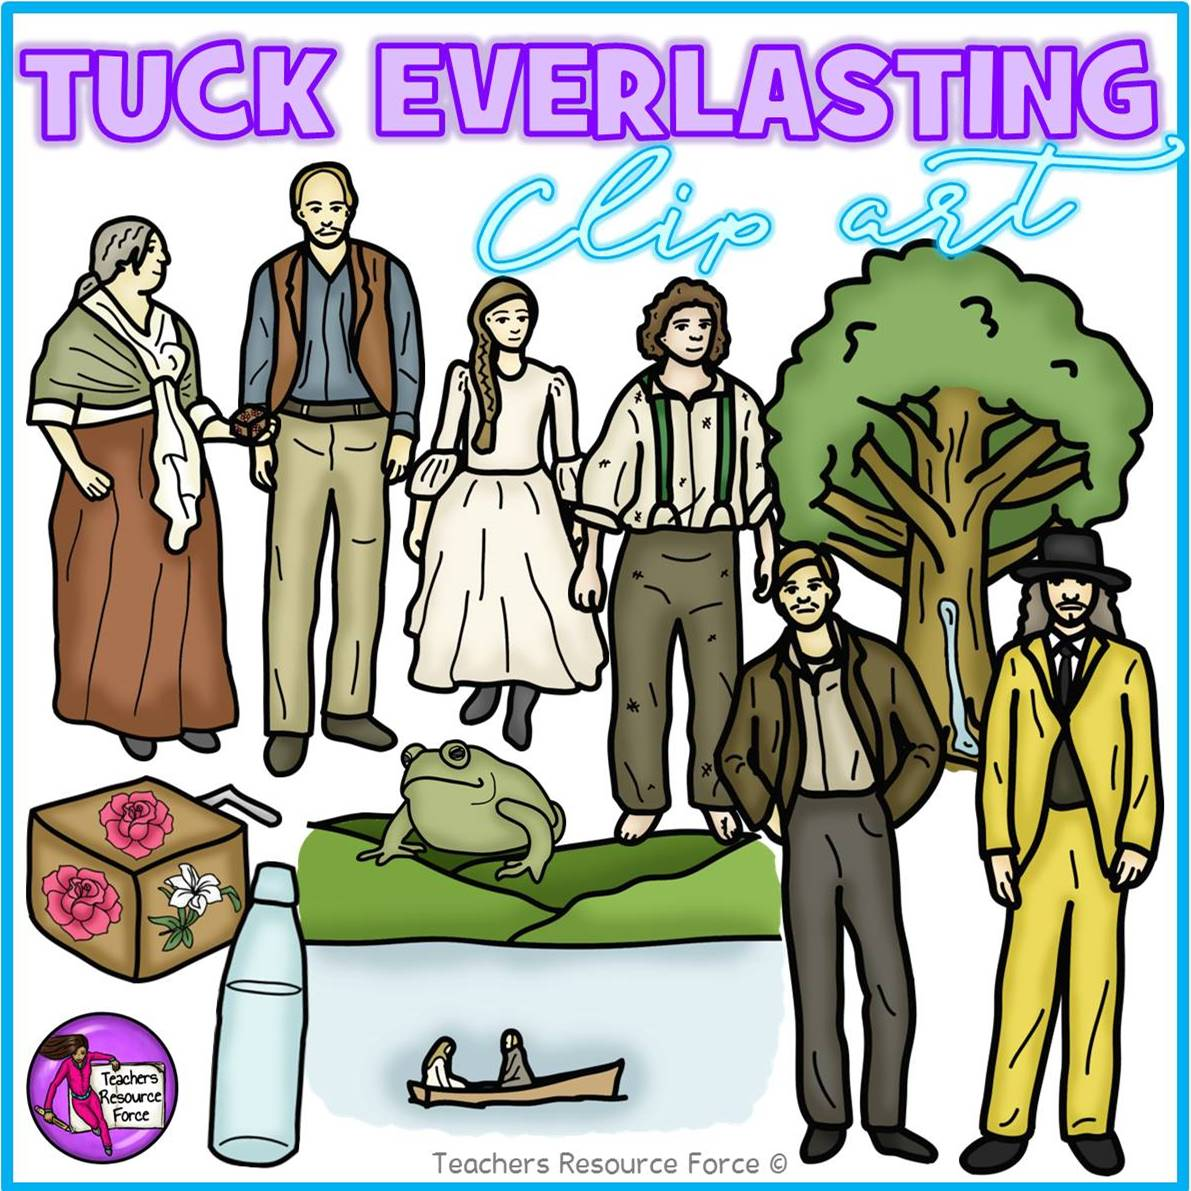 Tuck everlasting clipart 2 » Clipart Station.